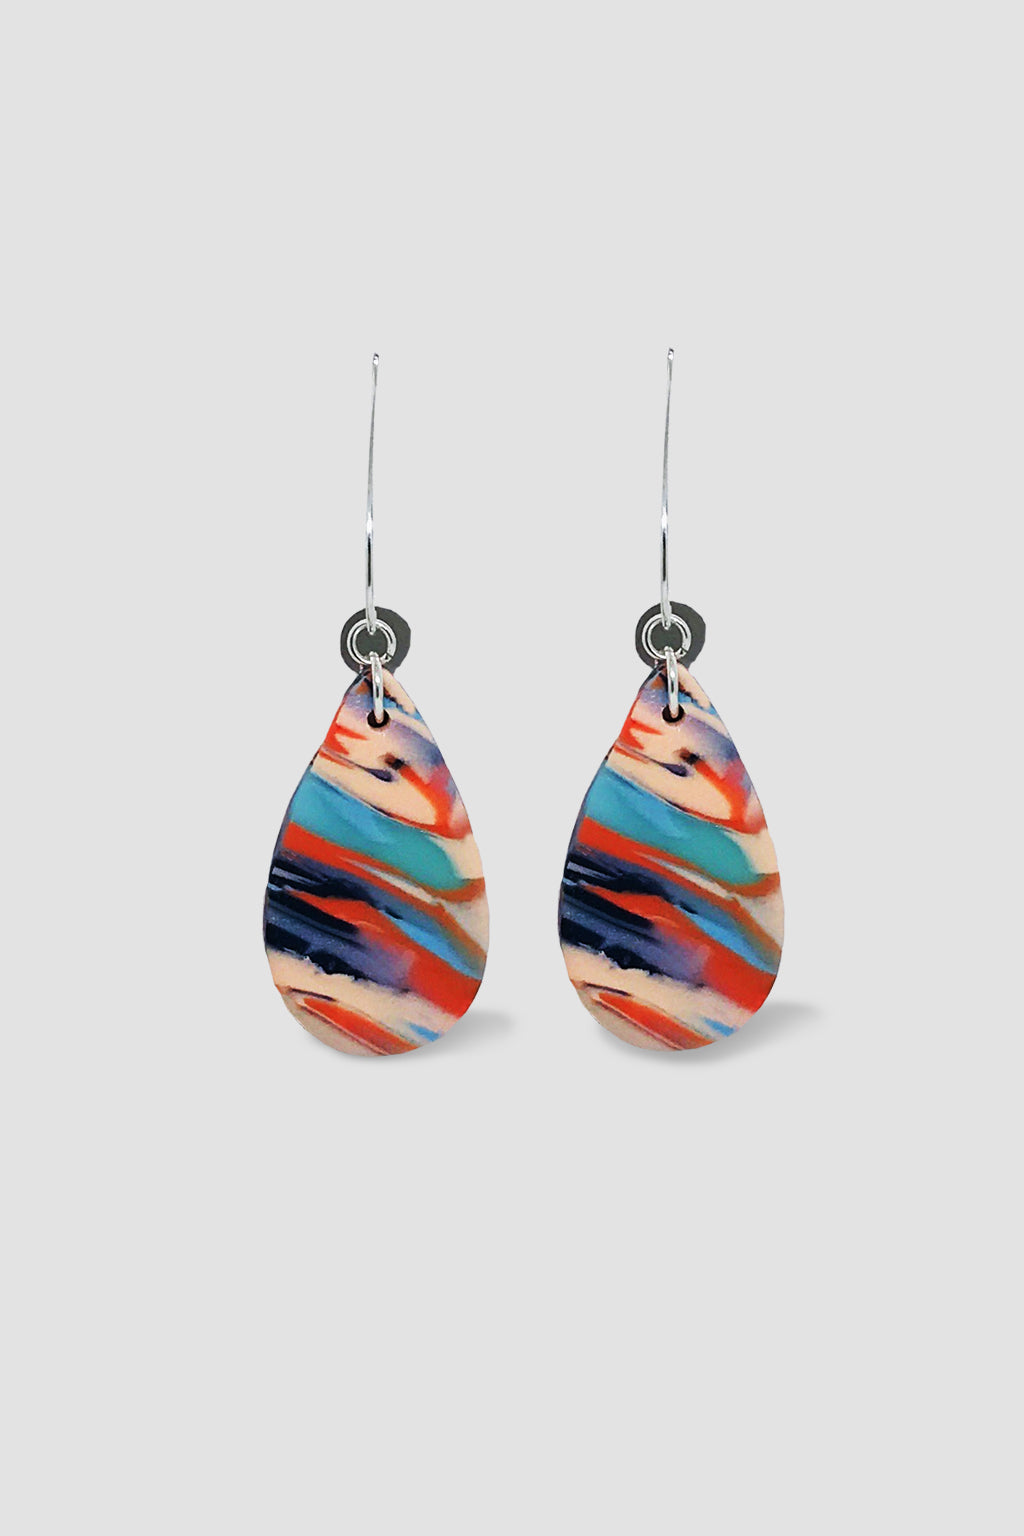 Down The Rabbit Hole-Tear Drop Dangle Earring - Orange Blue-Mott and Mulberry